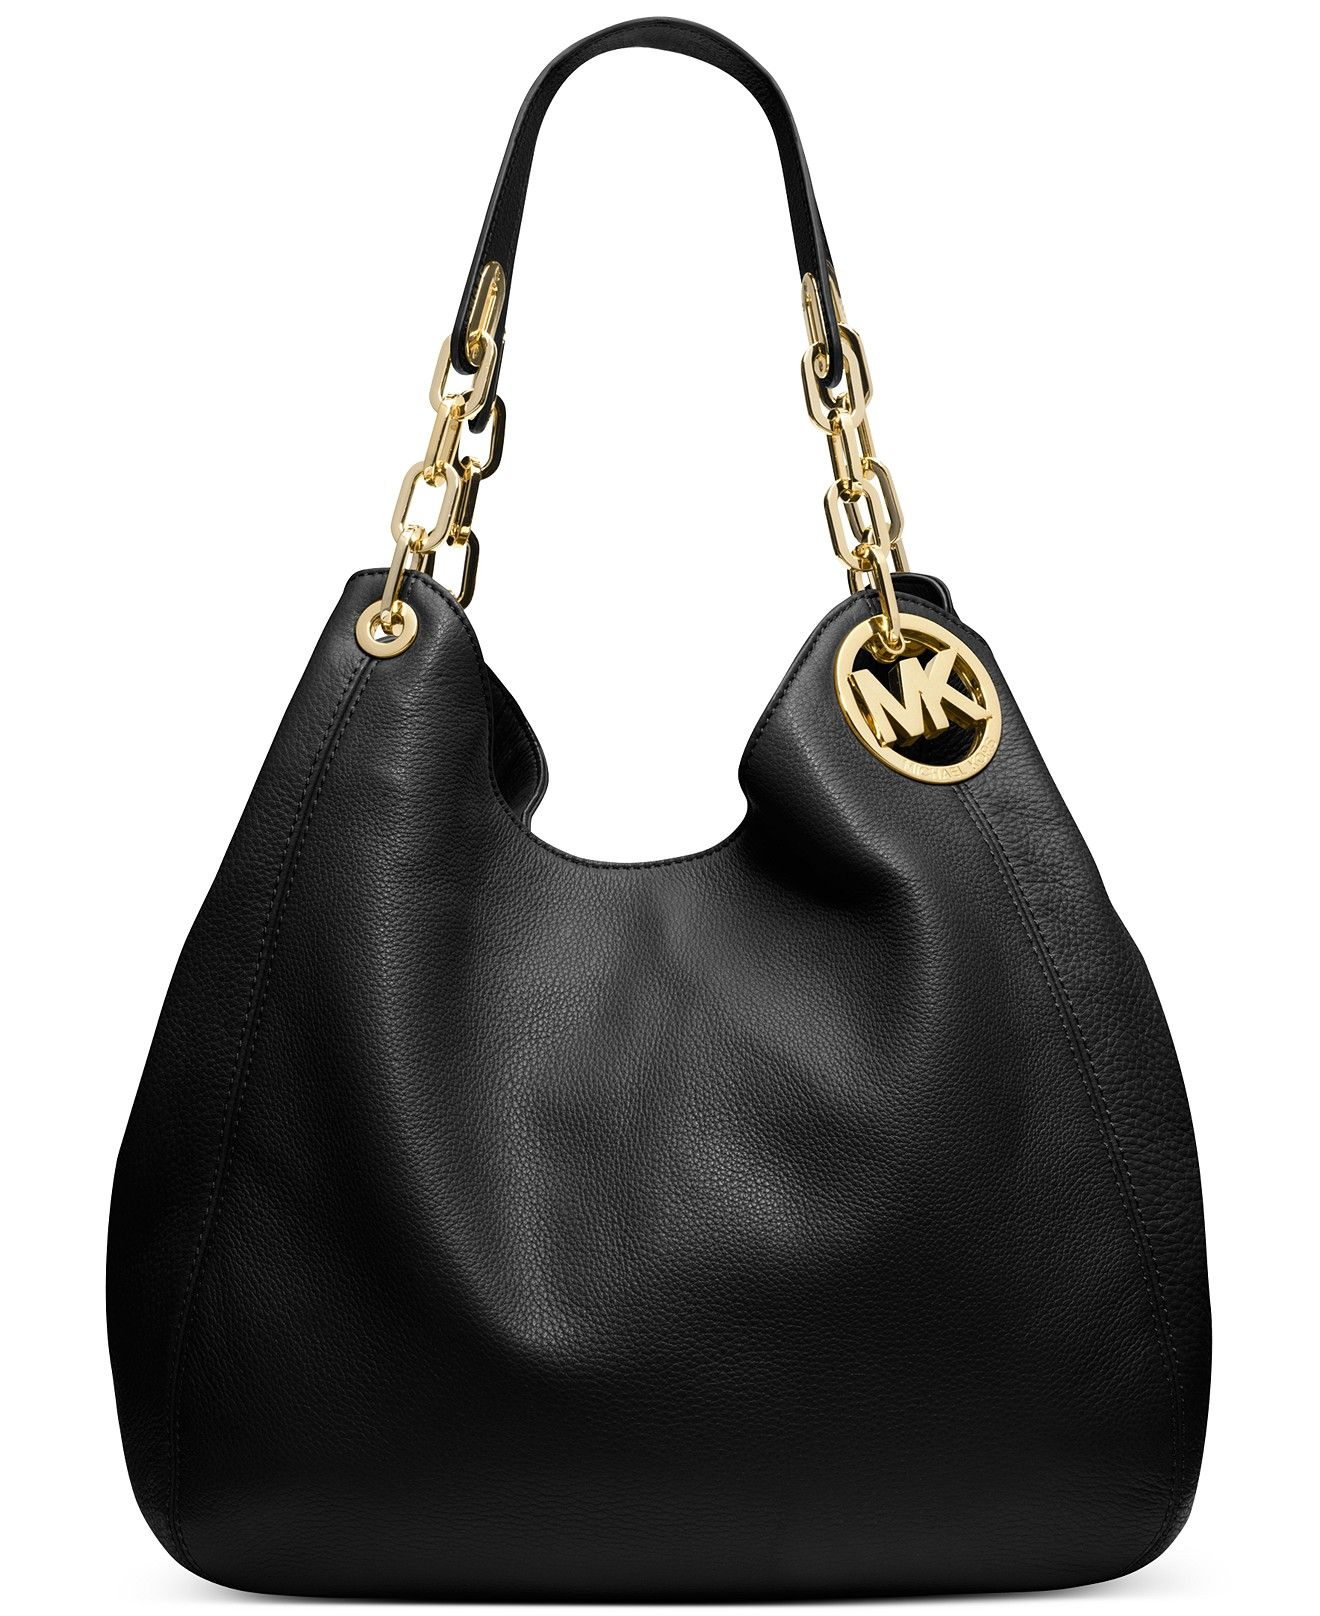 18c1f2a3f70a MICHAEL Michael Kors Fulton Large Shoulder Tote - Handbags & Accessories -  Macy's